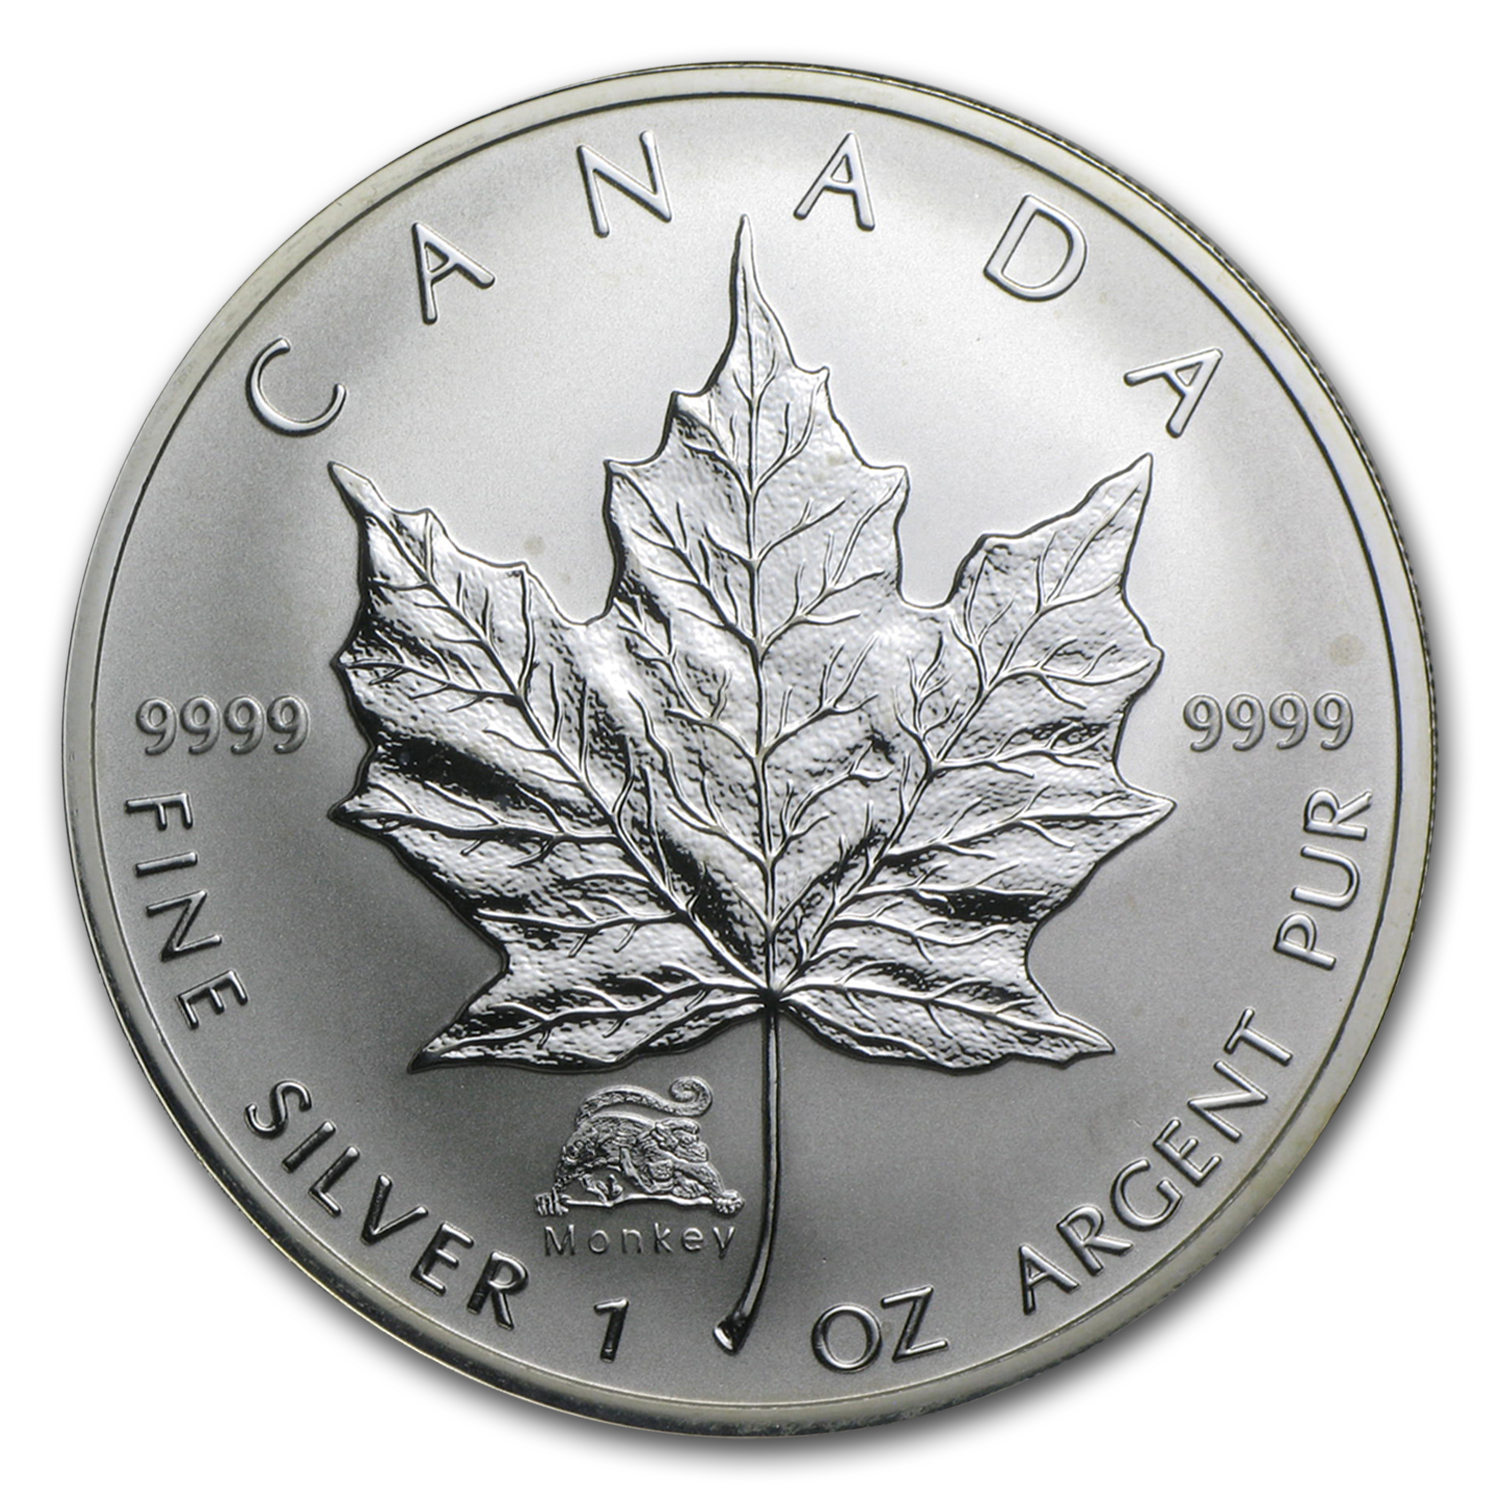 2004 1 oz Silver Canadian Maple Leaf - Lunar MONKEY Privy